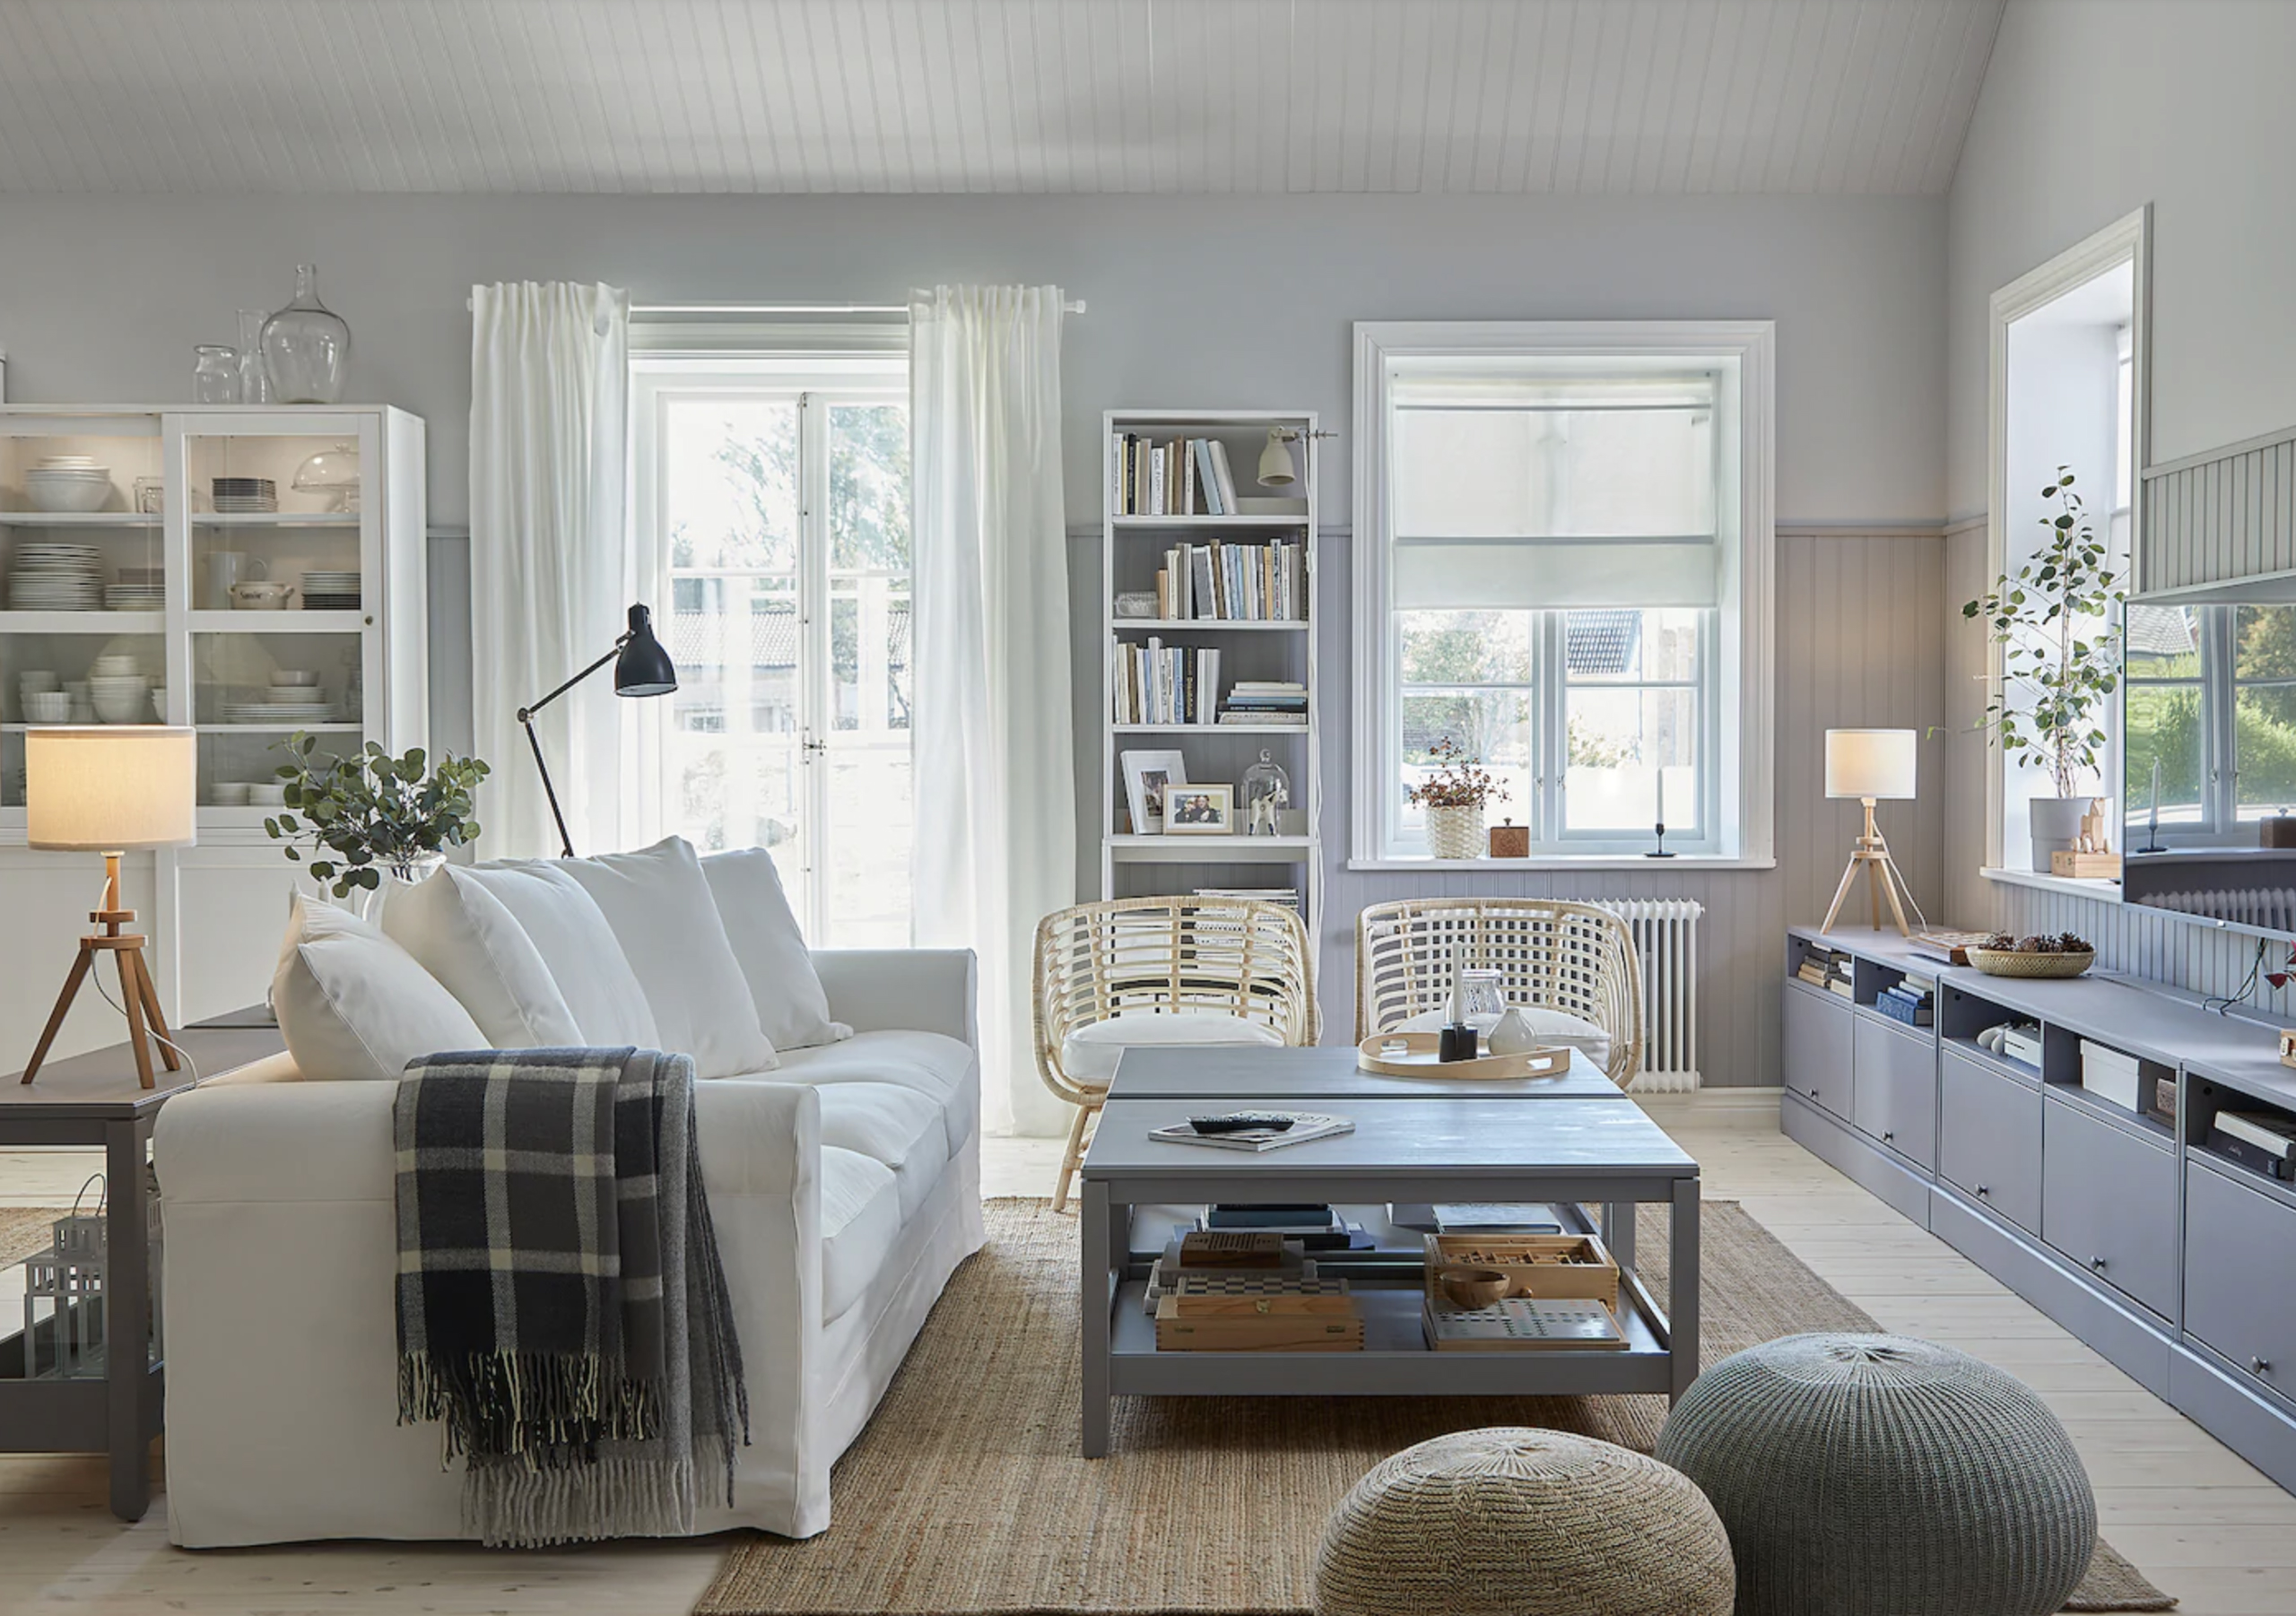 Living Room Storage Ideas 12 Ways To Quickly Tidy Up Your Space Real Homes